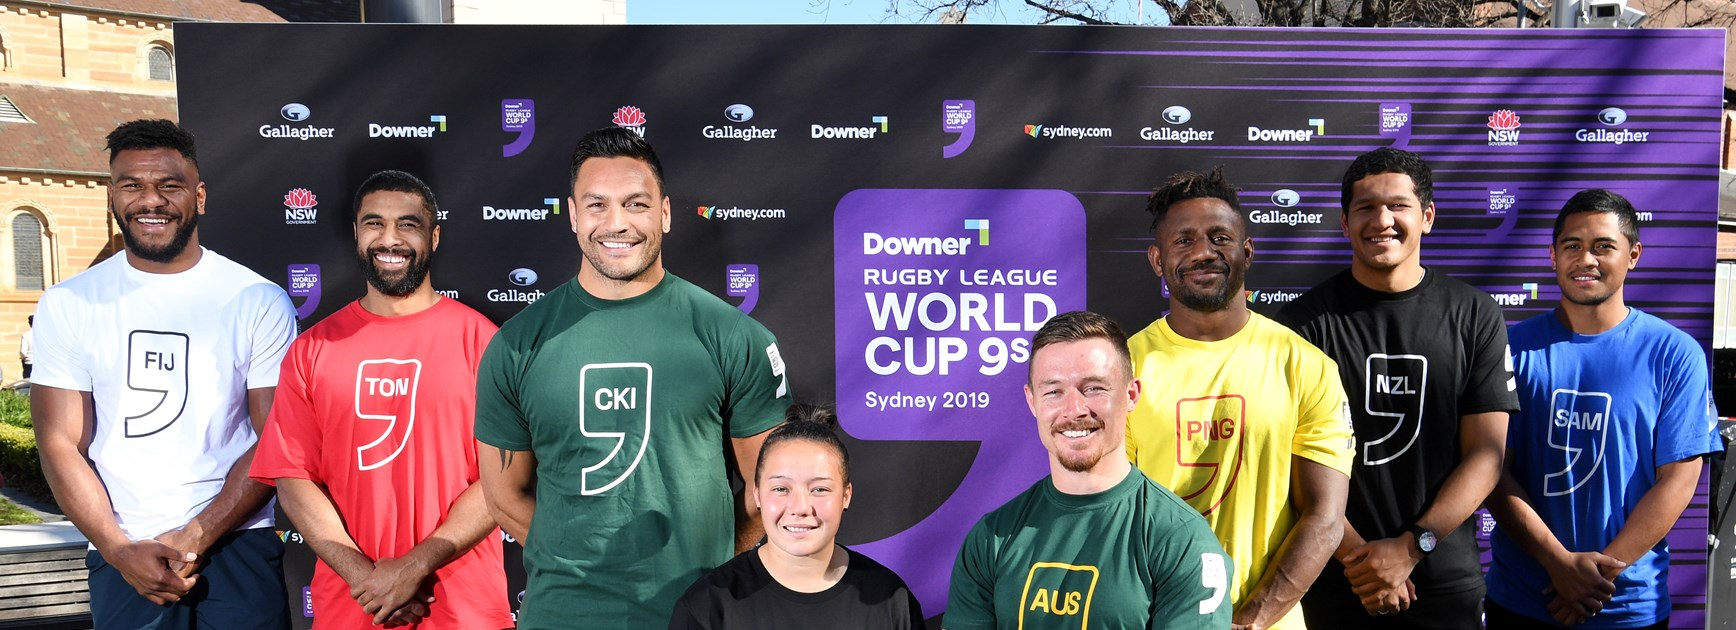 Downer Rugby League World Cup 9s draw announced